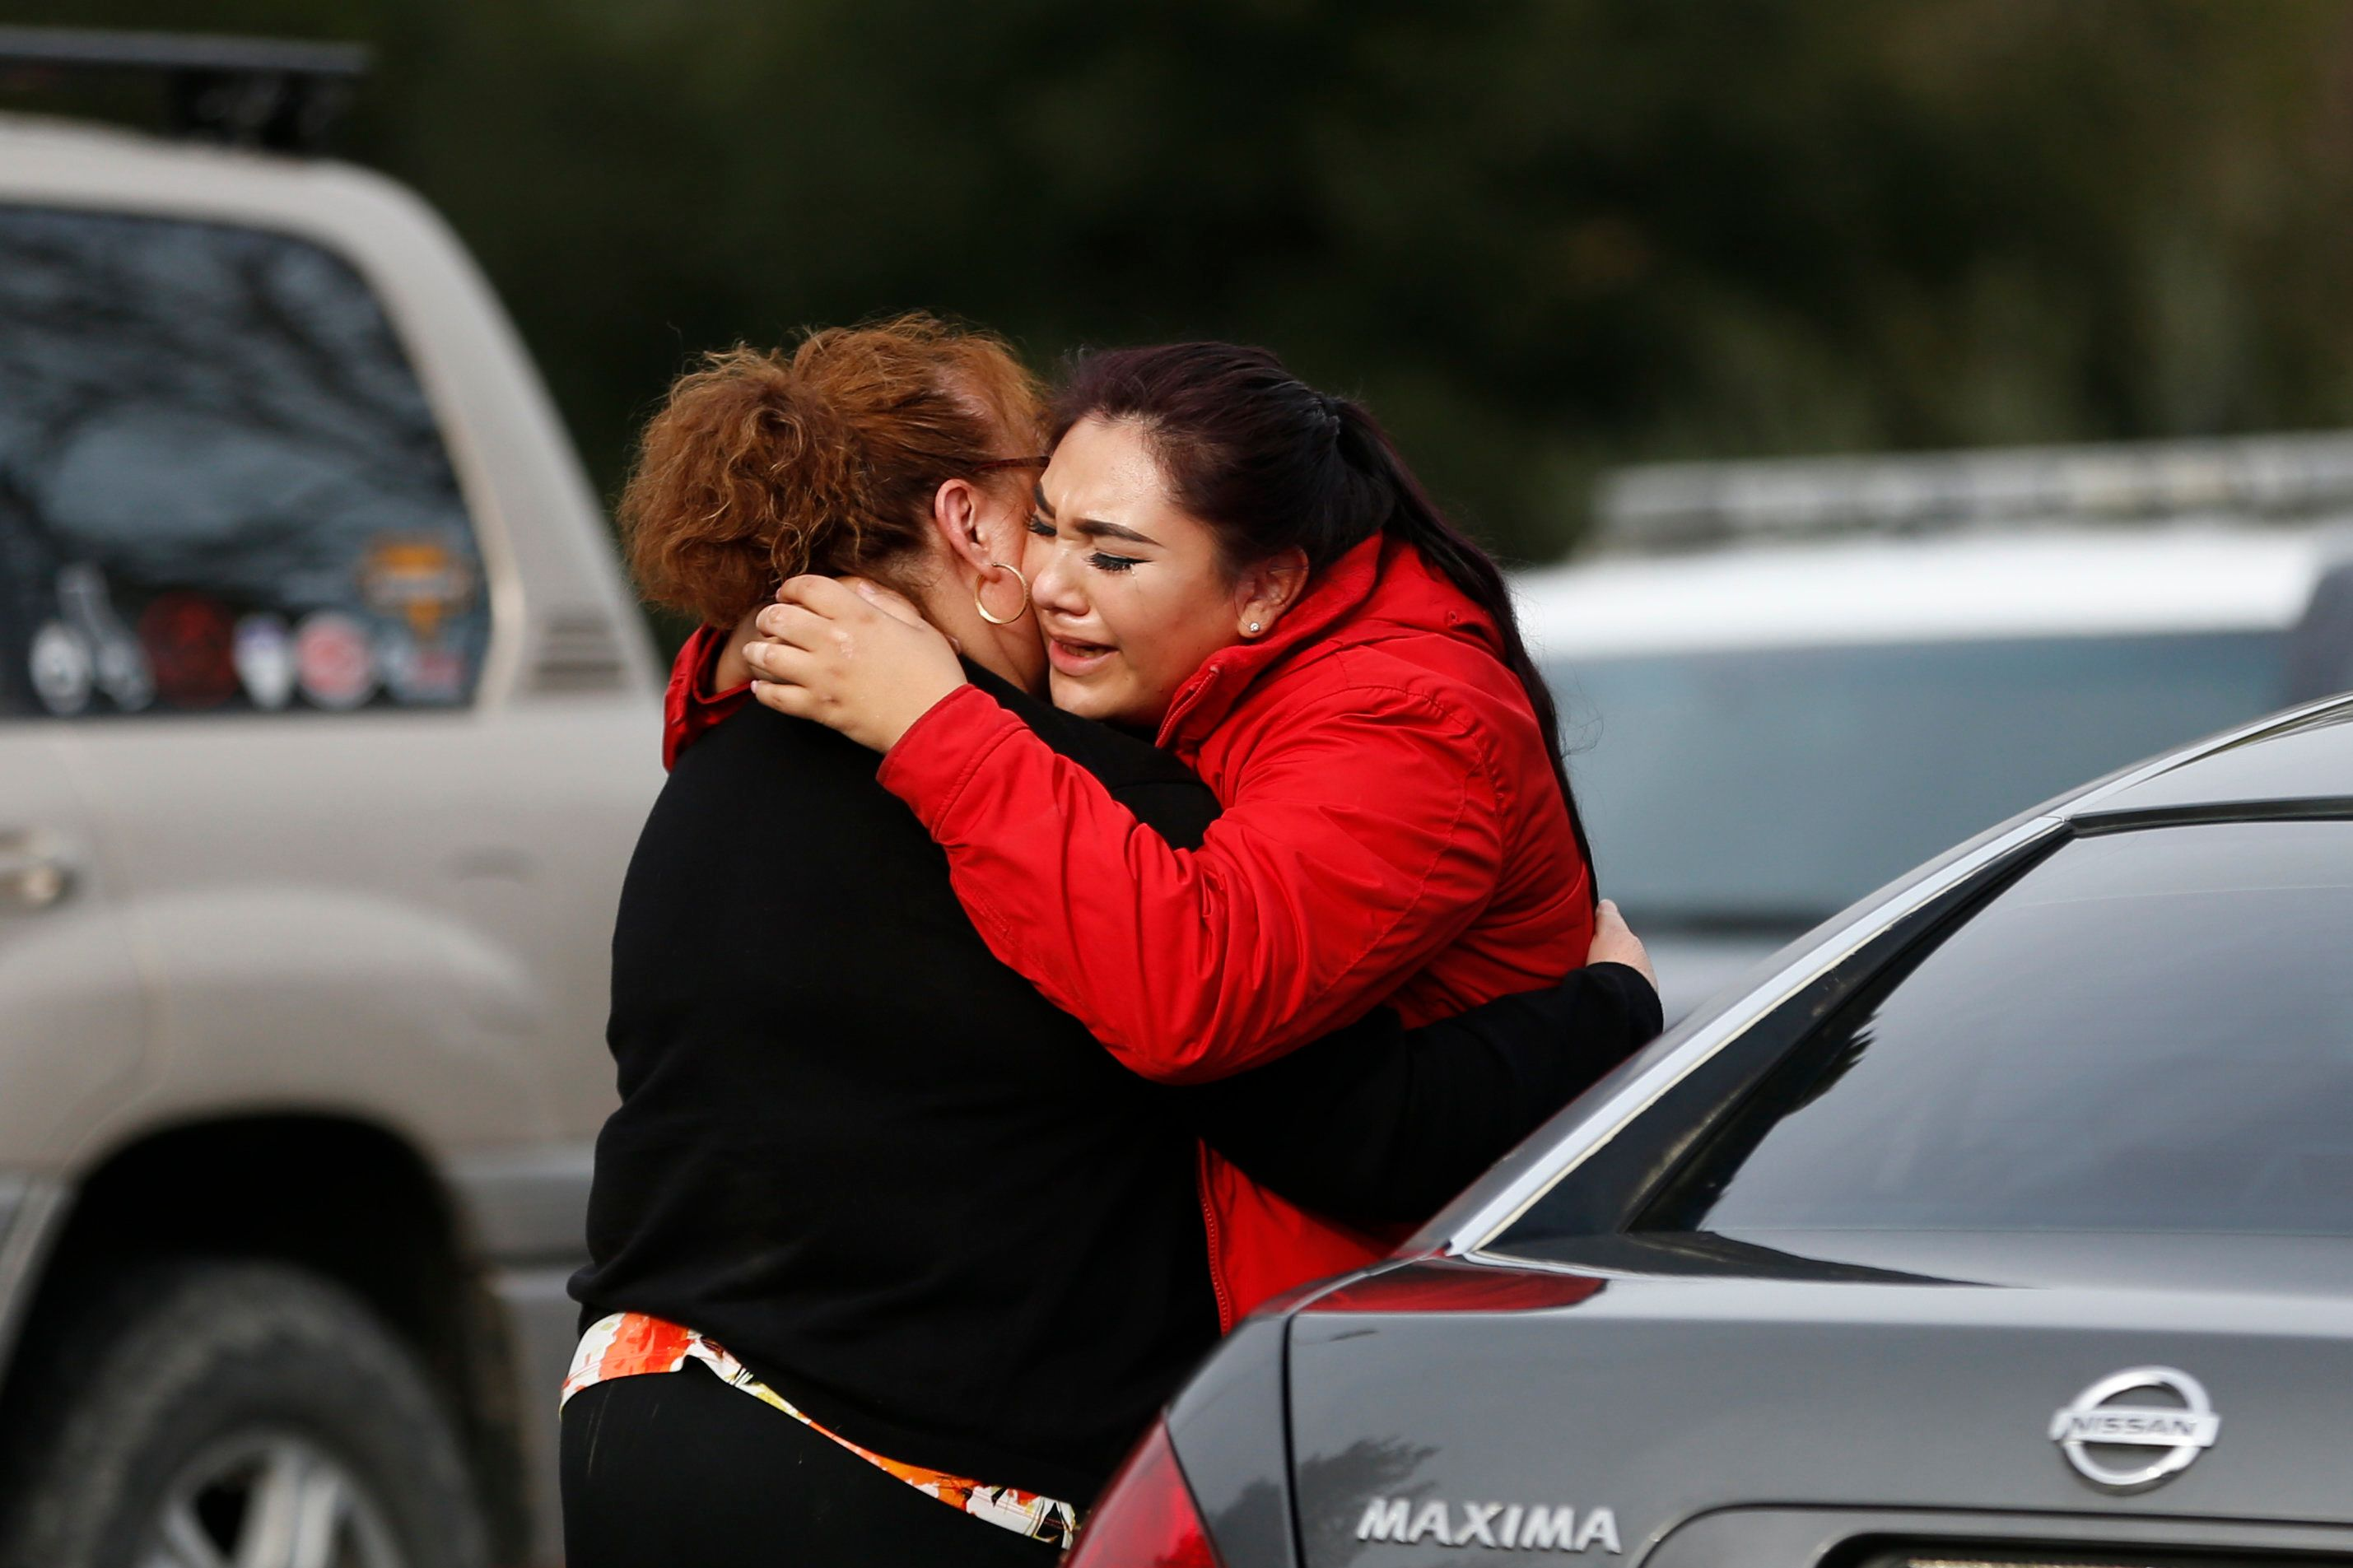 YOUNTVILLE, CA - MARCH 09: Vanessa Flores (R) embraces another woman after she leaves the locked down Veterans Home of California during an active shooter turned hostage situation on March 9, 2018 in Yountville, California. A lone gunman opened fire and is holding three hostages inside the largest veterans facility in the United States founded in 1884. (Photo by Stephen Lam/Getty Images)